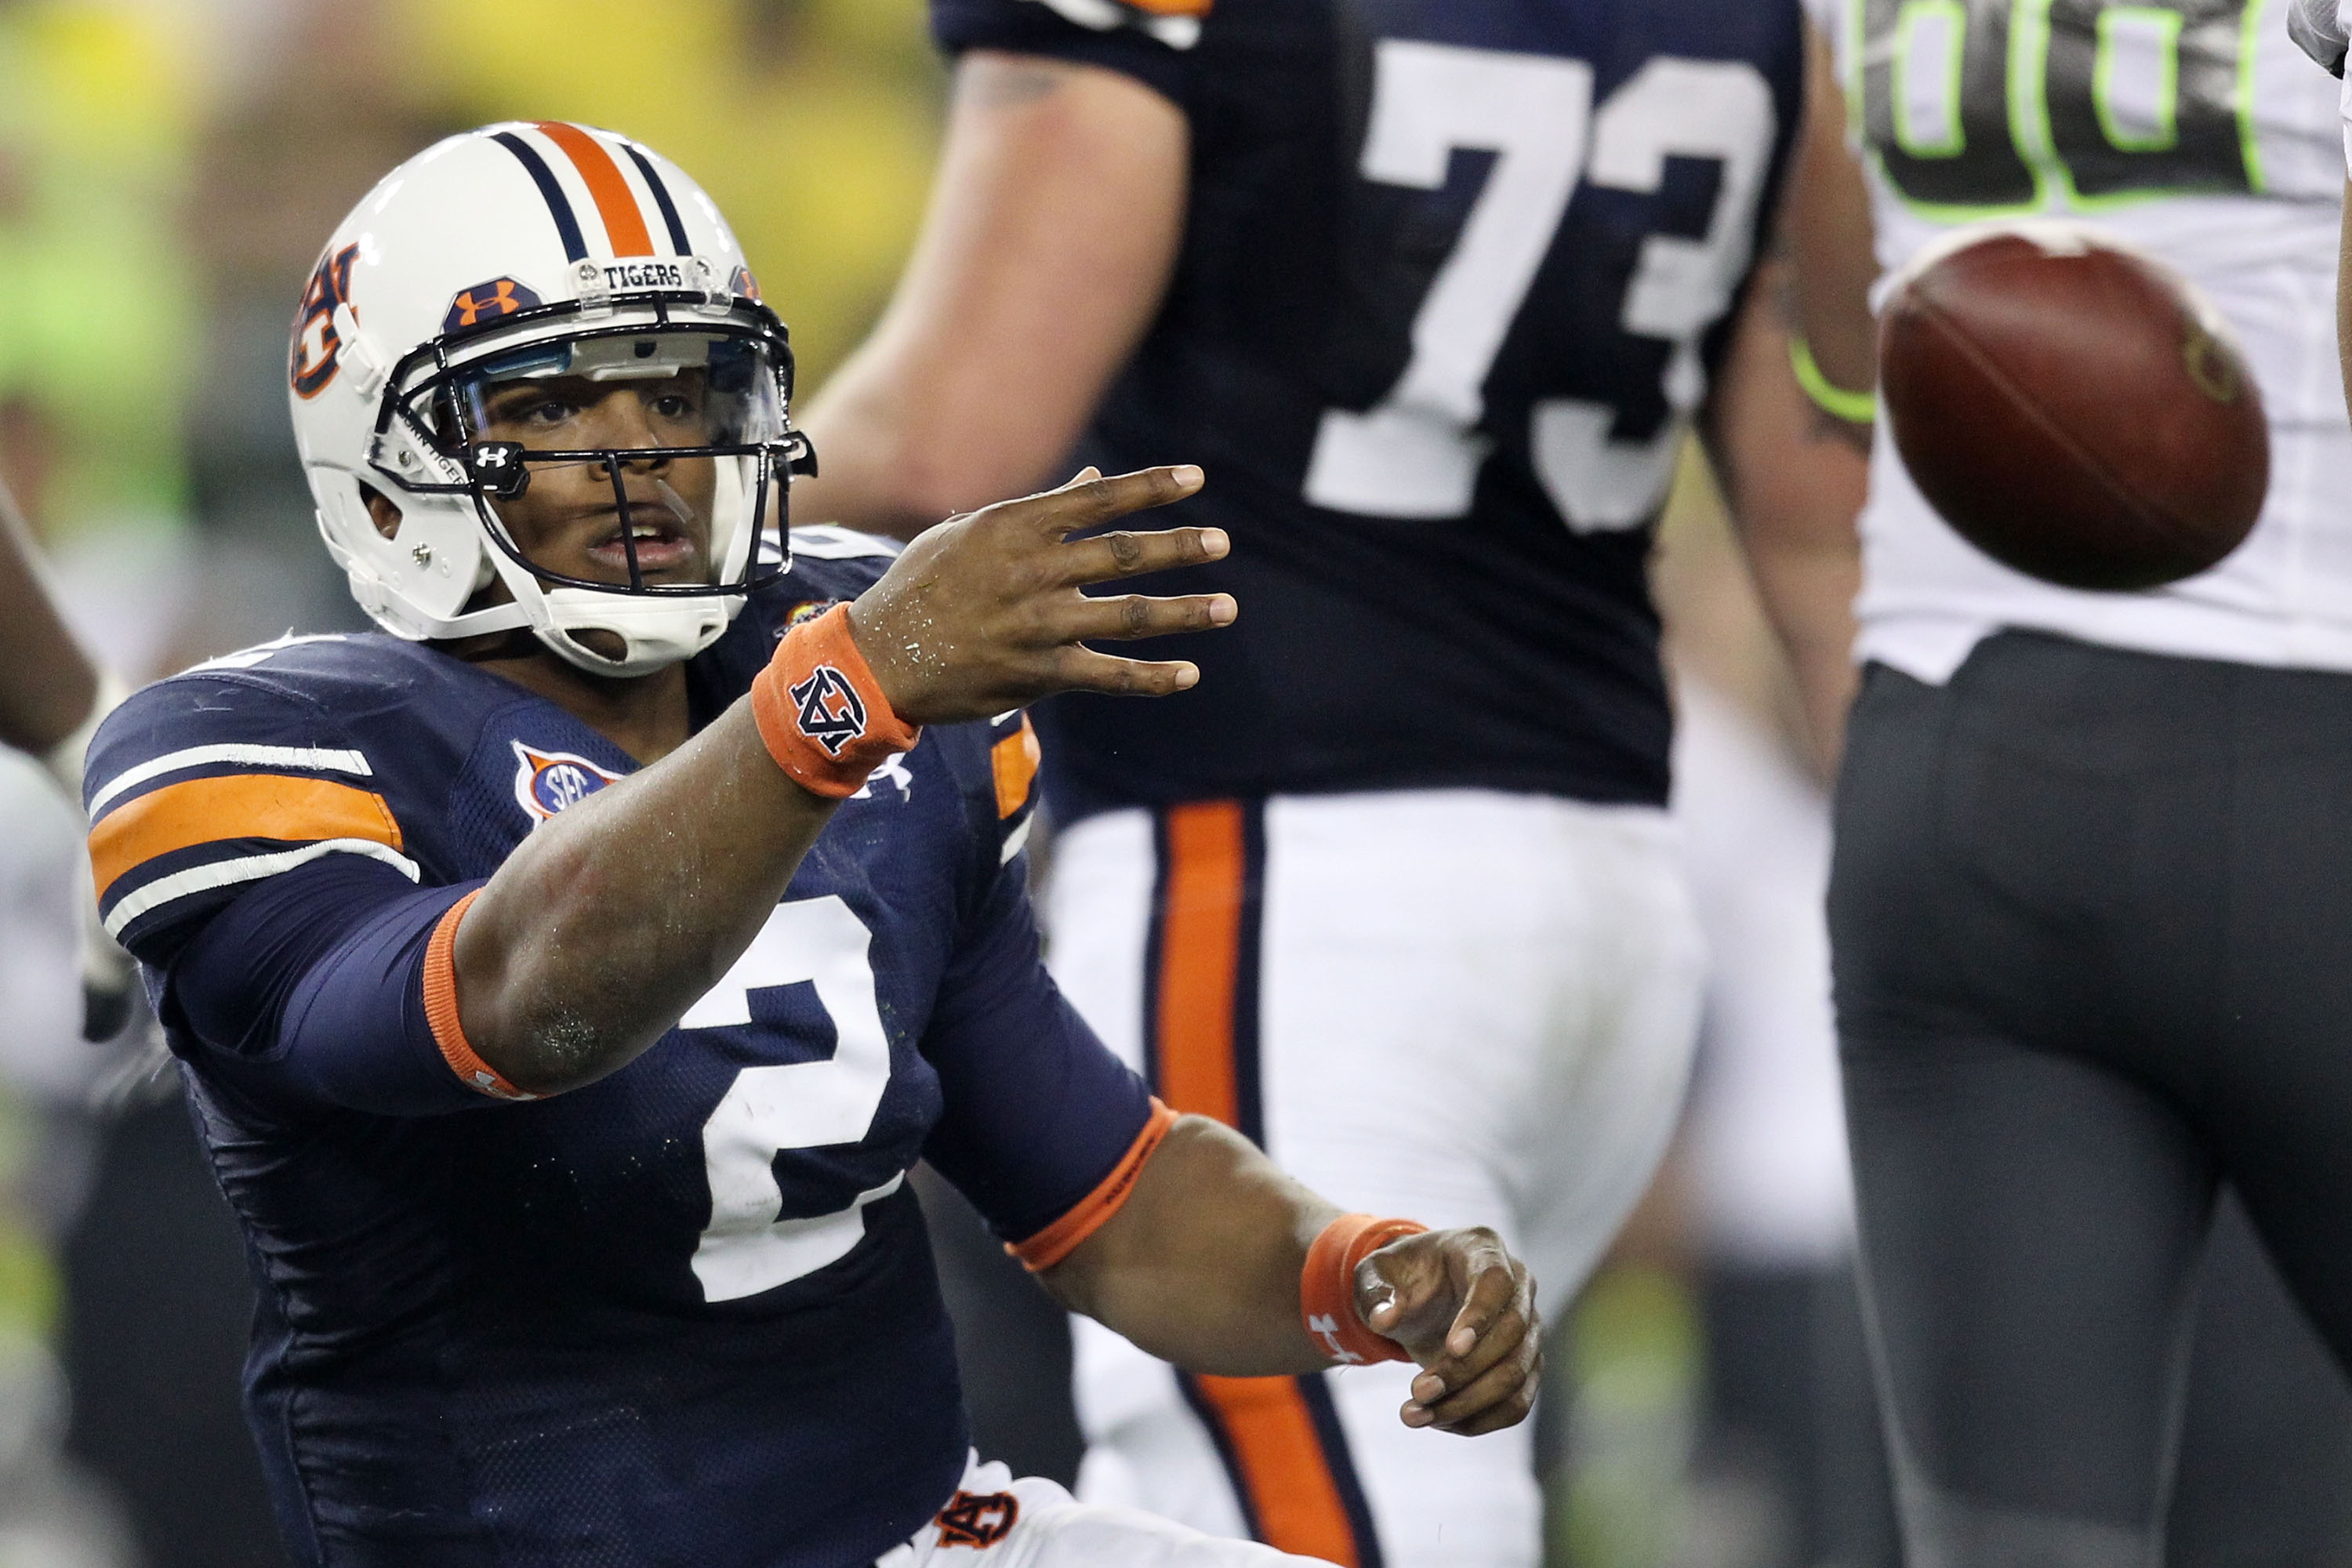 GLENDALE, AZ - JANUARY 10:  Cameron Newton #2 of the Auburn Tigers tosses the ball after being sacked by the Oregon Ducks during the Tostitos BCS National Championship Game at University of Phoenix Stadium on January 10, 2011 in Glendale, Arizona.  (Photo